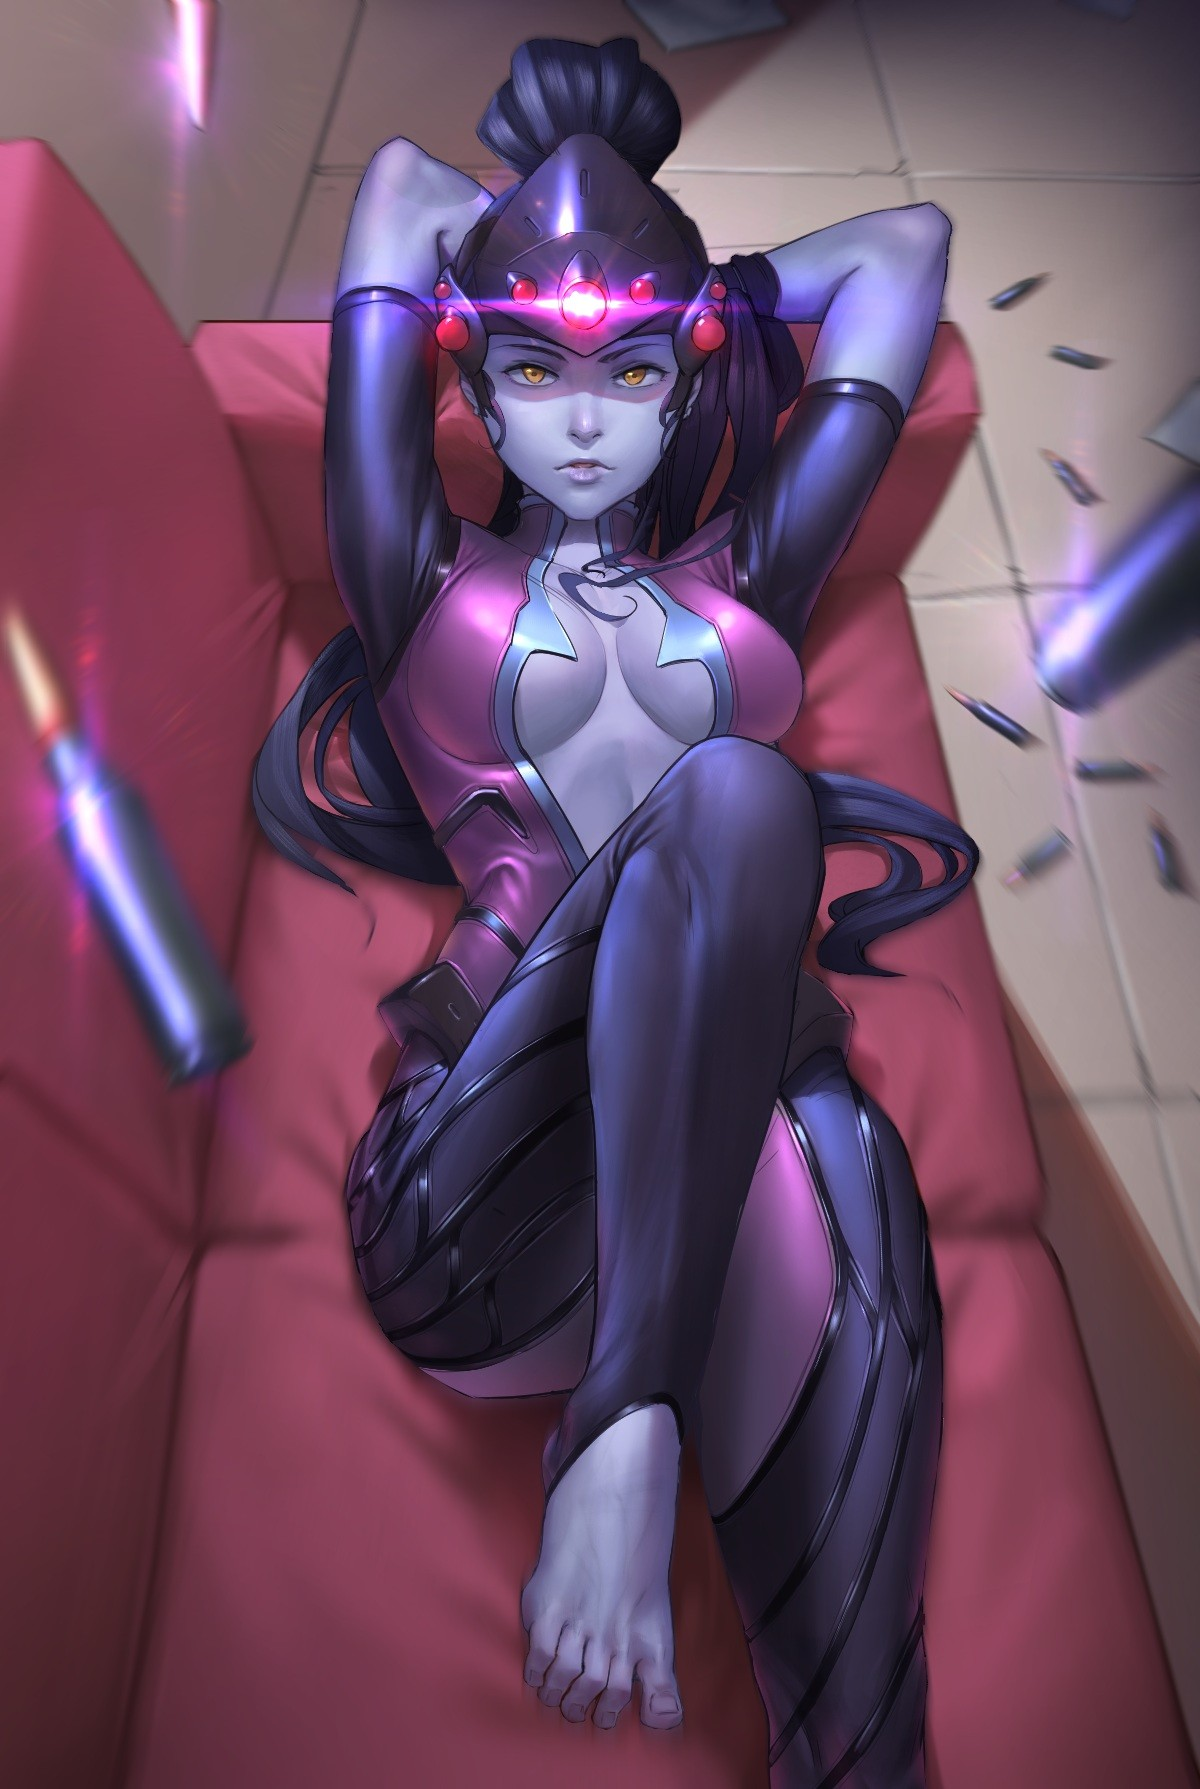 Anime 1200x1789 anime girls Overwatch bodysuit cleavage feet no bra video games Blizzard Entertainment artwork digital art missing sock